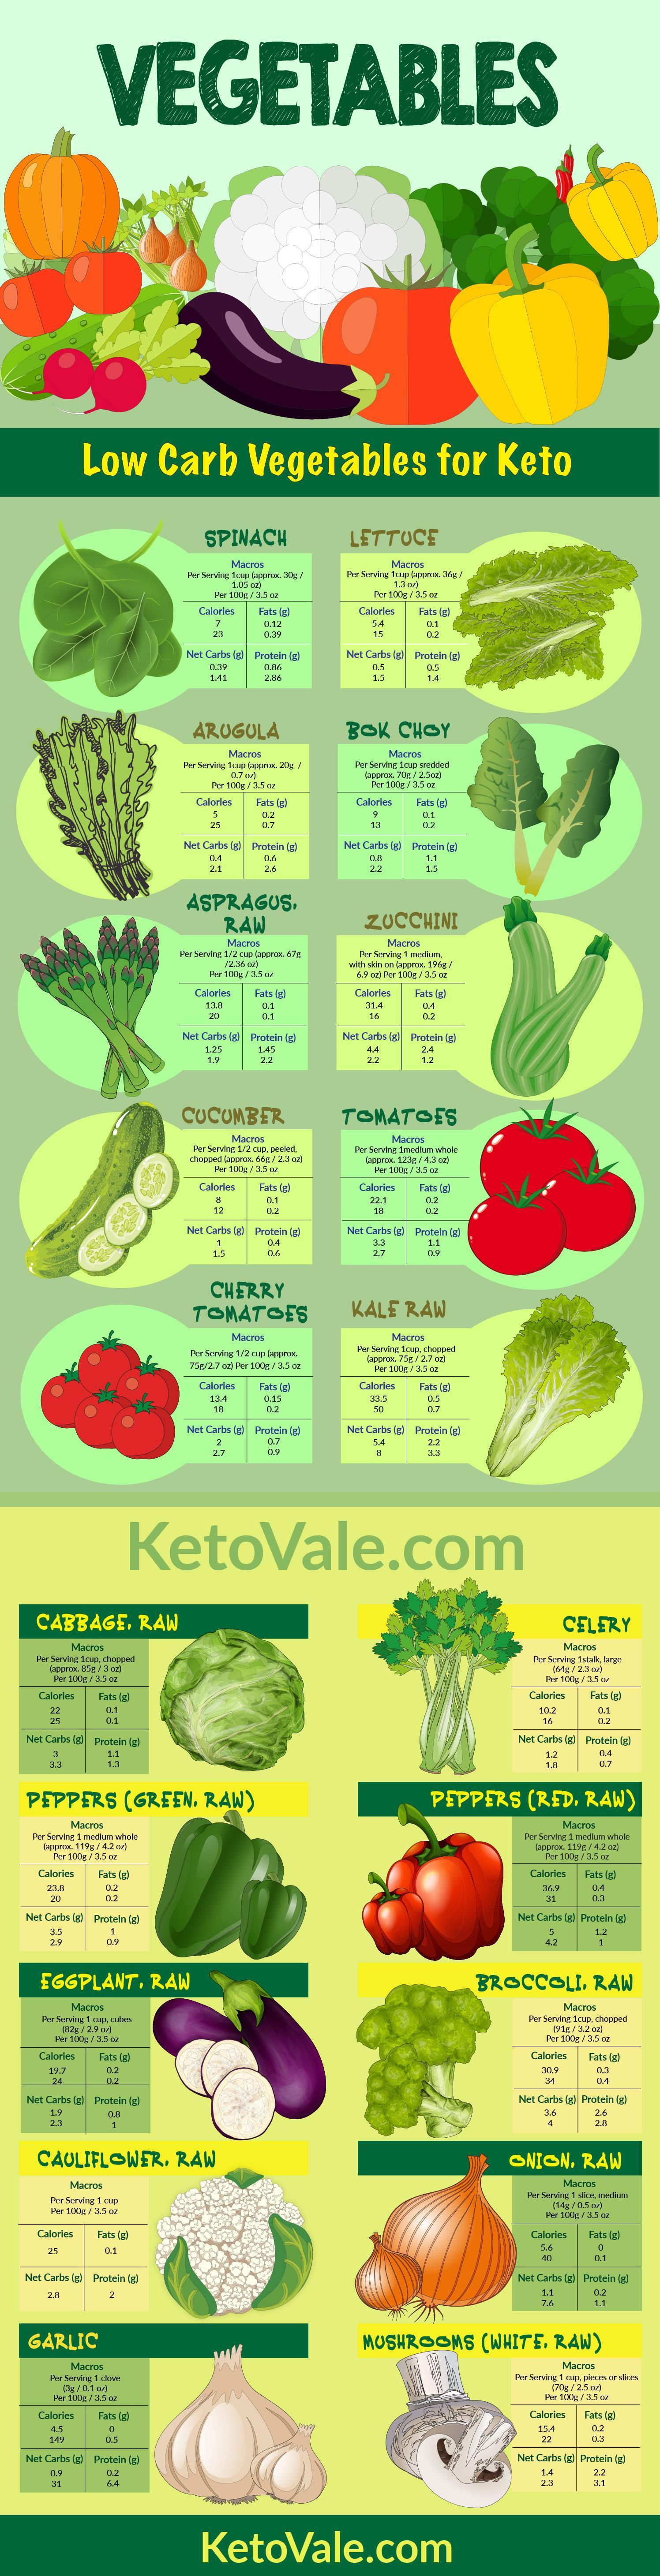 Keto Diet Food List, Including Best Keto Foods vs. Worst